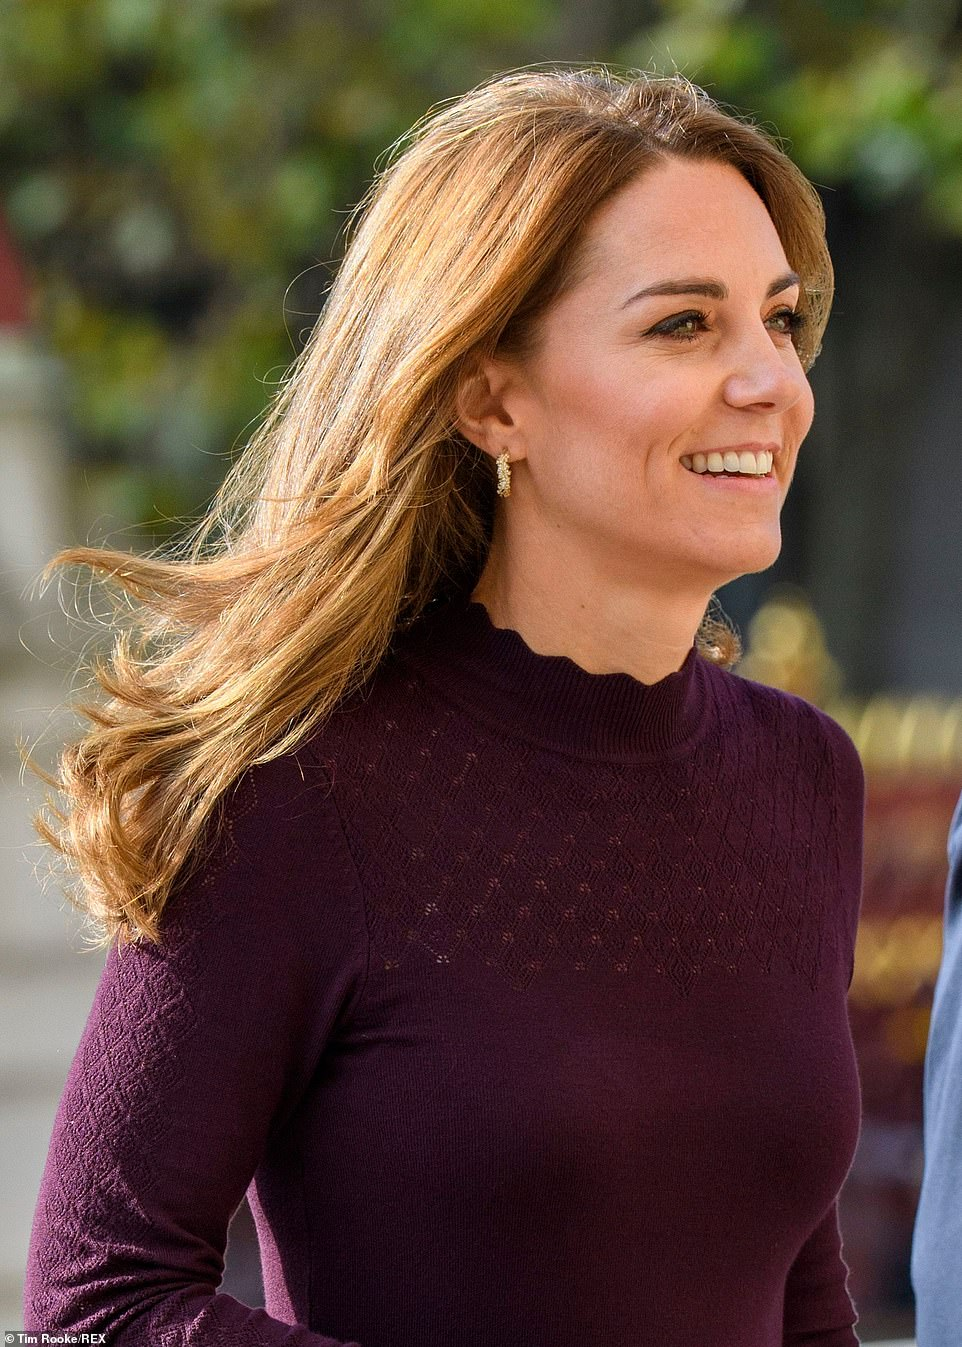 Kate Middleton Steps Out in the Perfect Fall Look